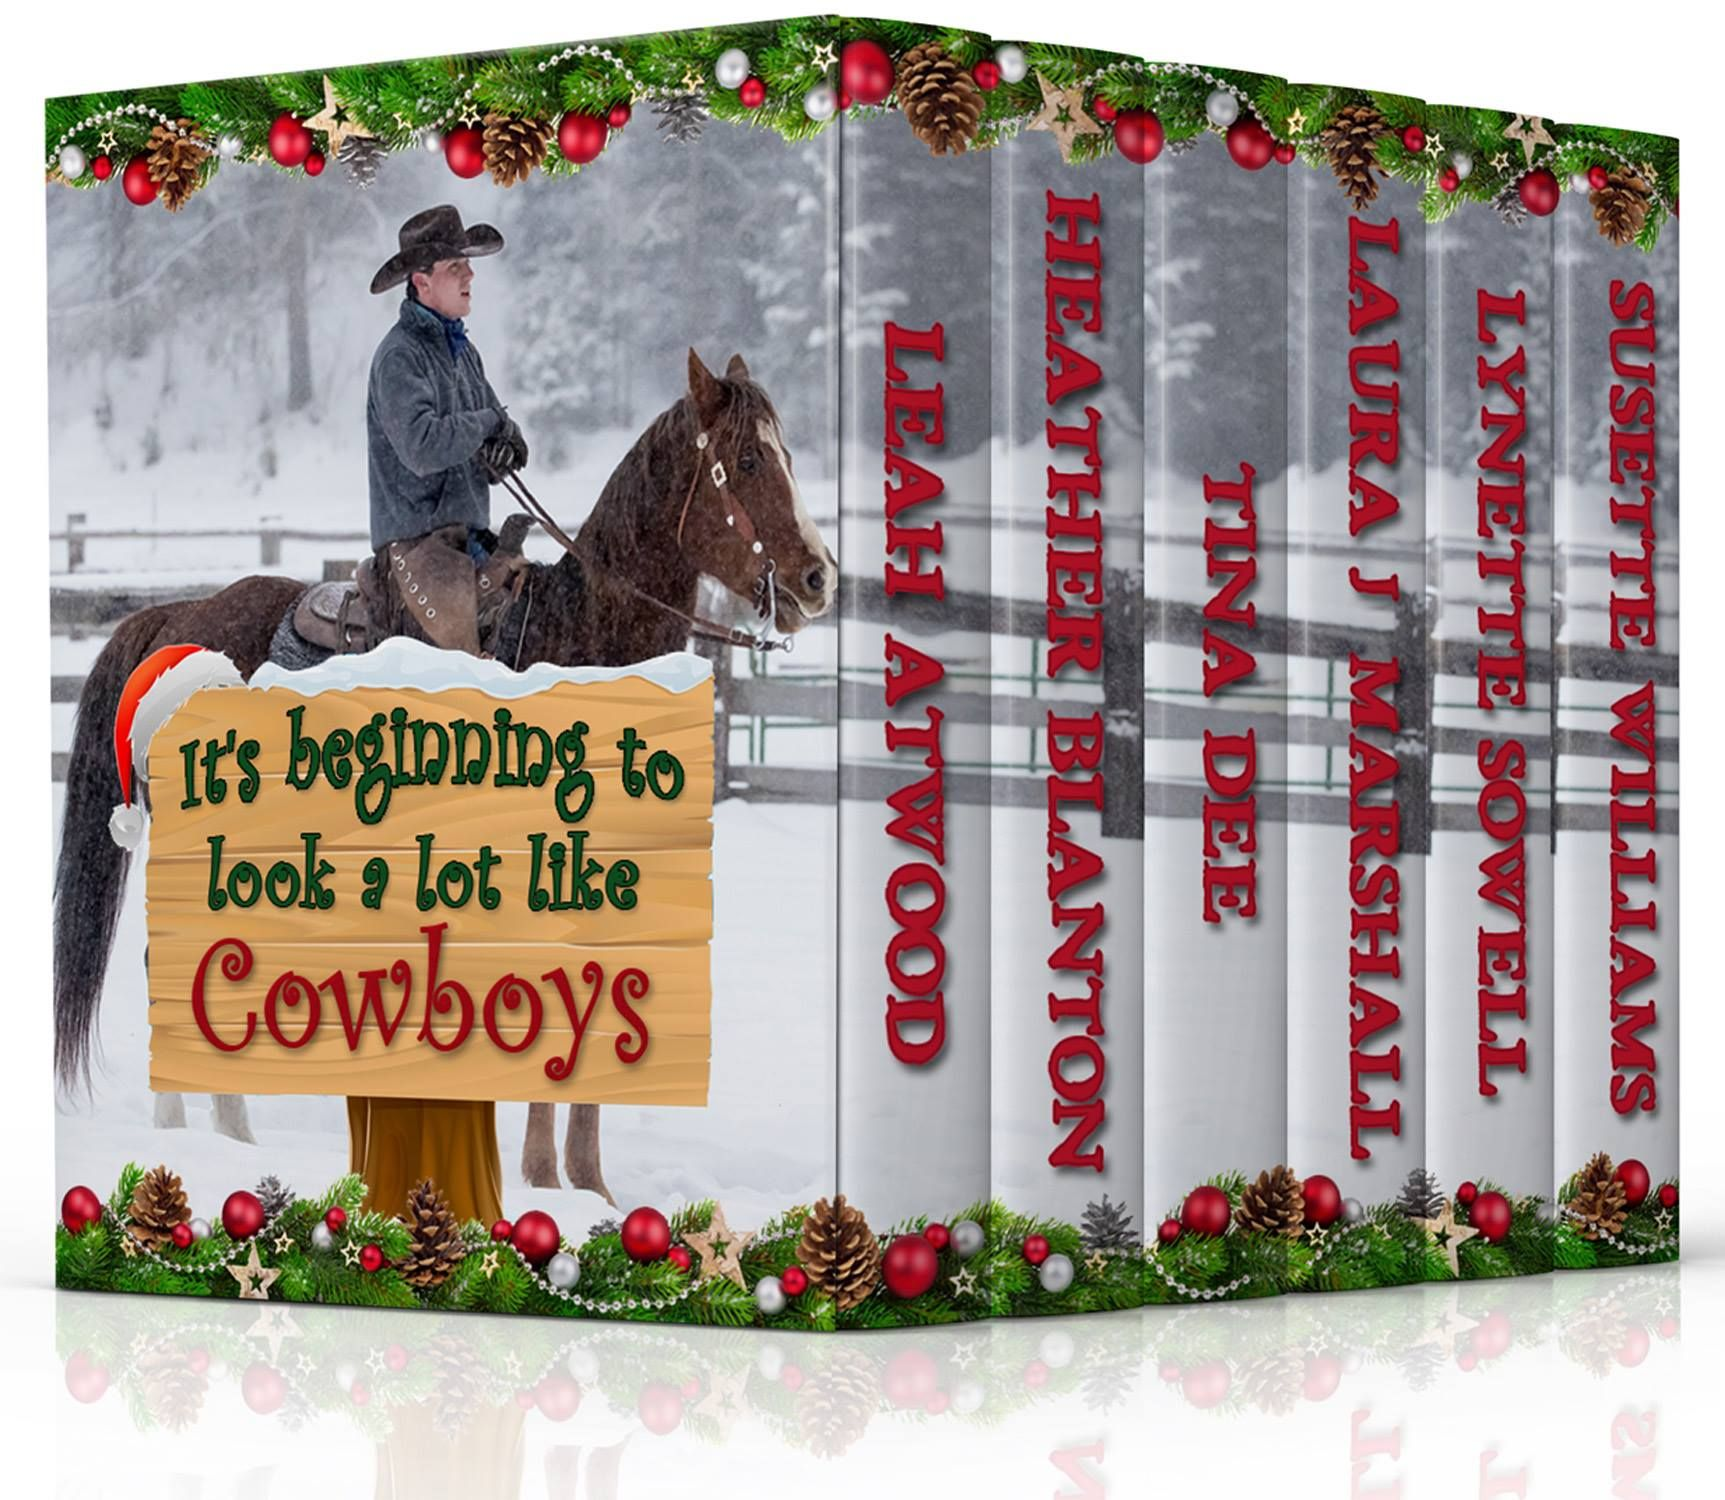 Its beginning to look a lot like cowboys by leah atwood